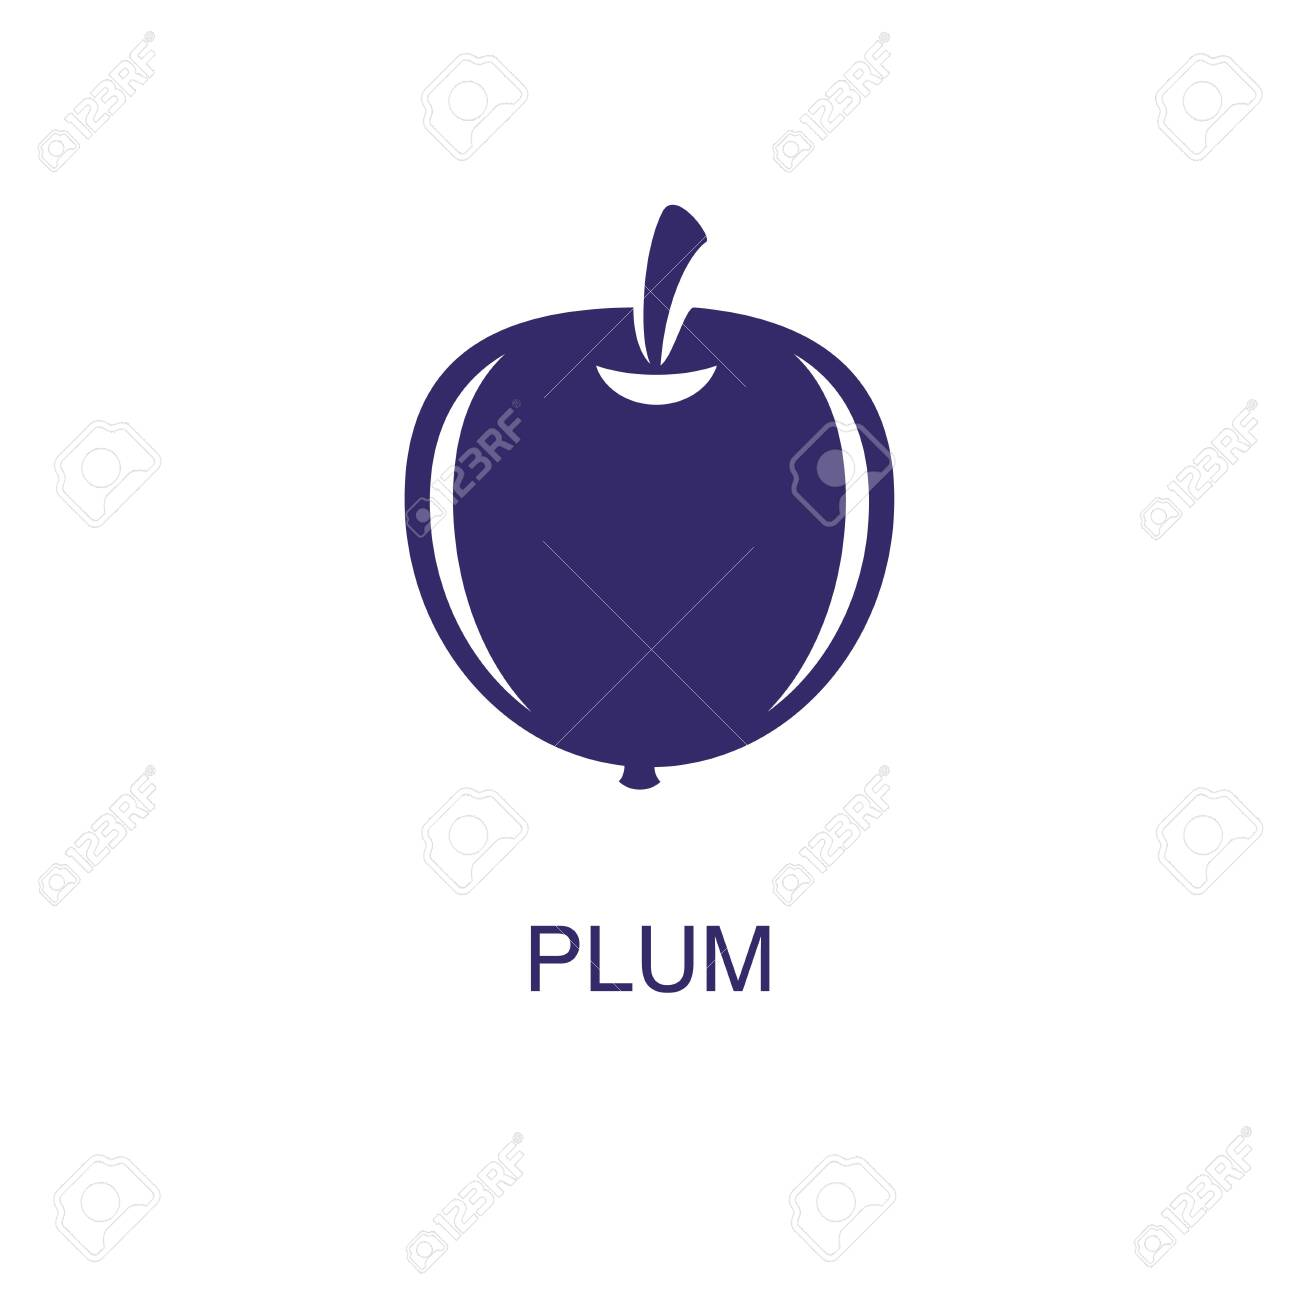 Plum element in flat simple style on white background. Plum icon, with text name concept template - 135073672